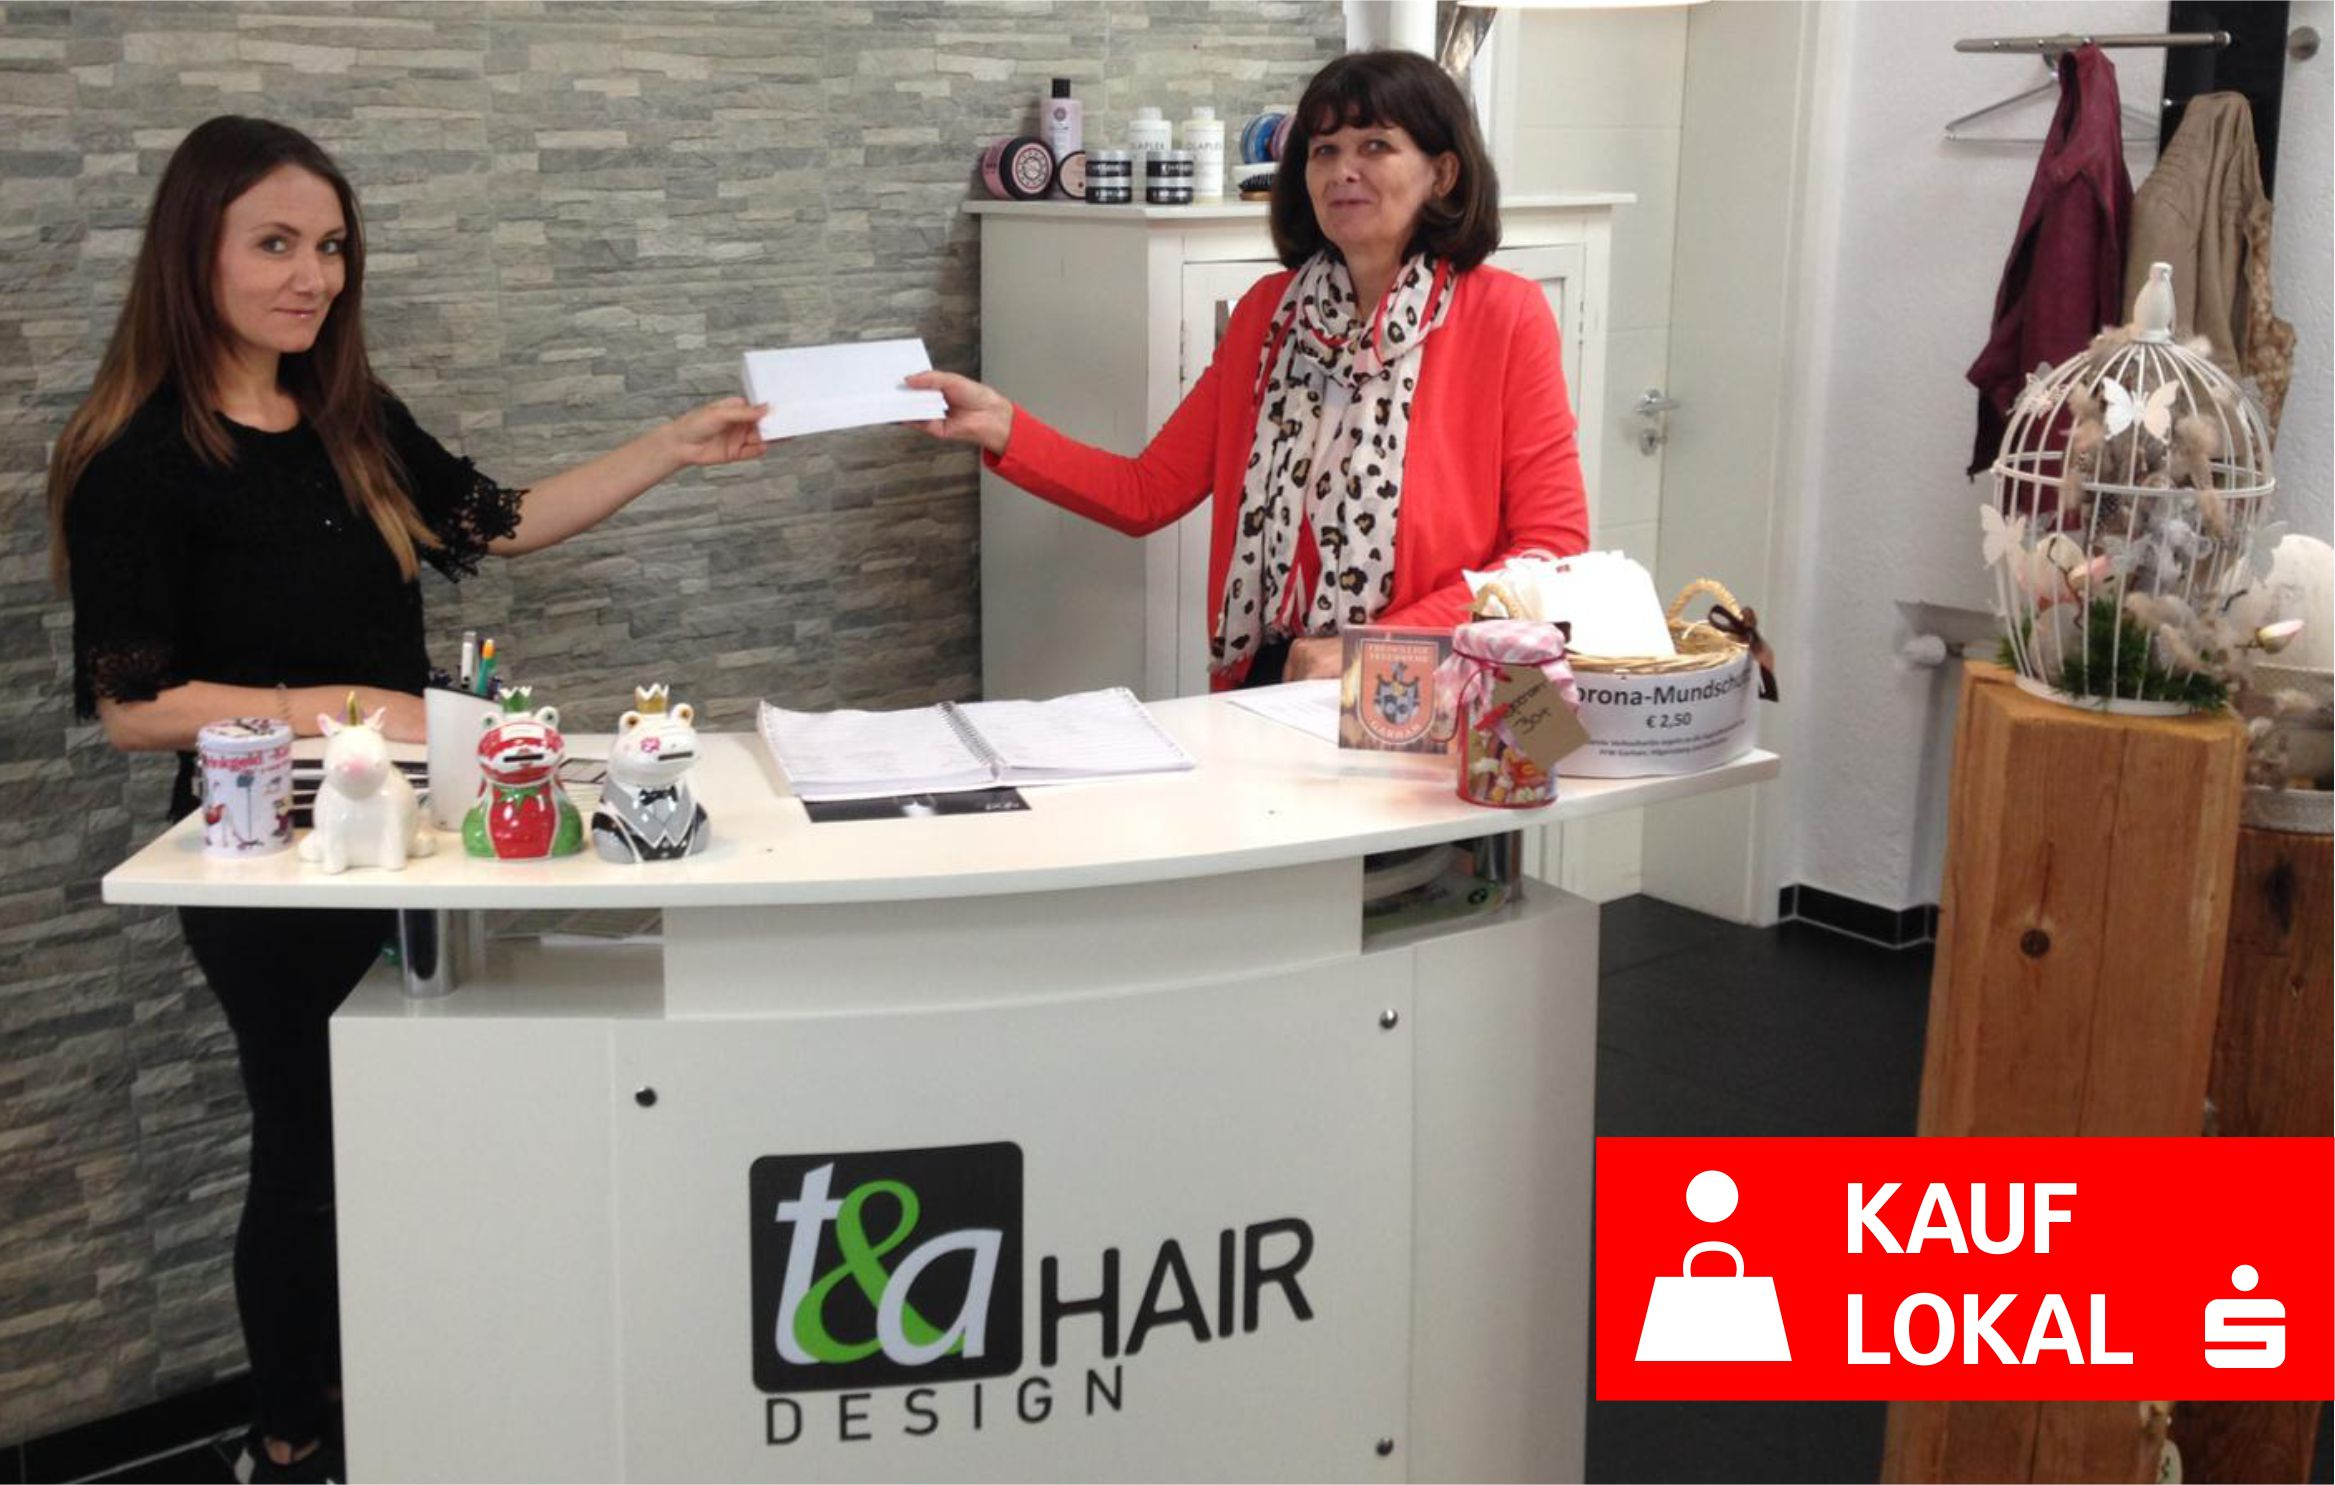 T-A-Hair-Design-in-Hofkirchen-GS-Fürstenstein_Kauf-lokal